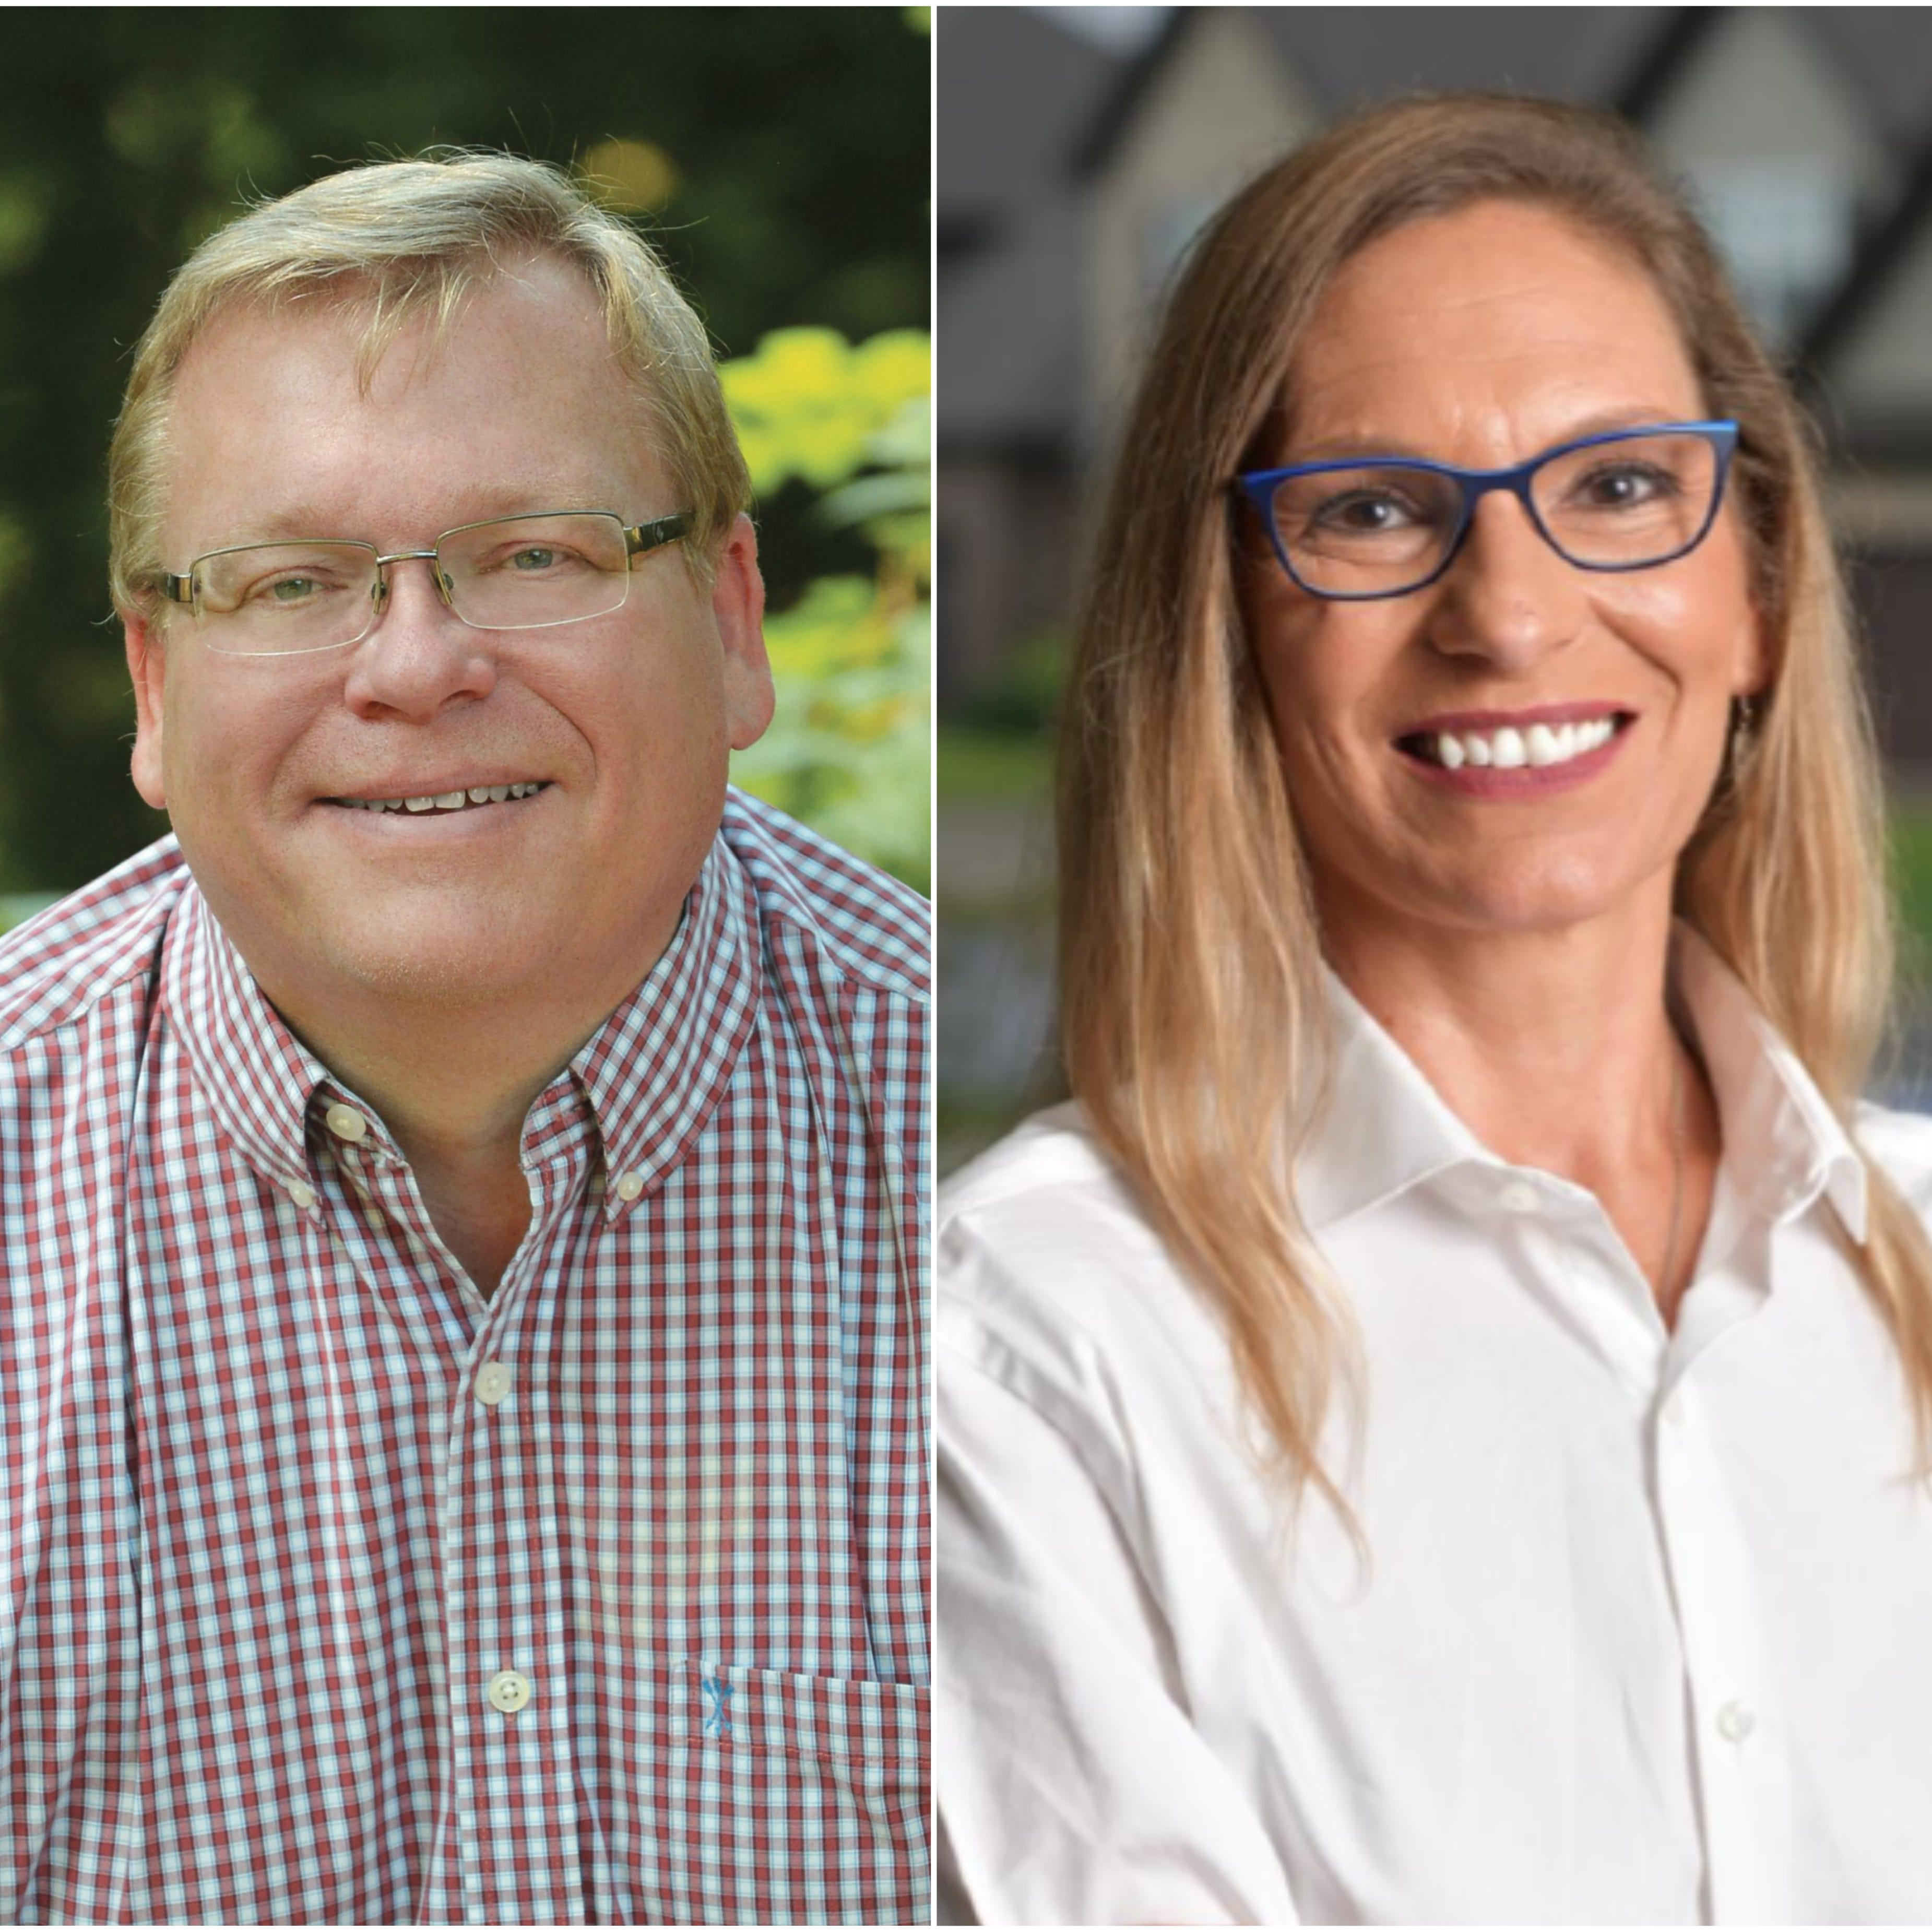 Election 2018: Tim Rudd, Jennifer Vannoy on education, jobs in Rutherford County